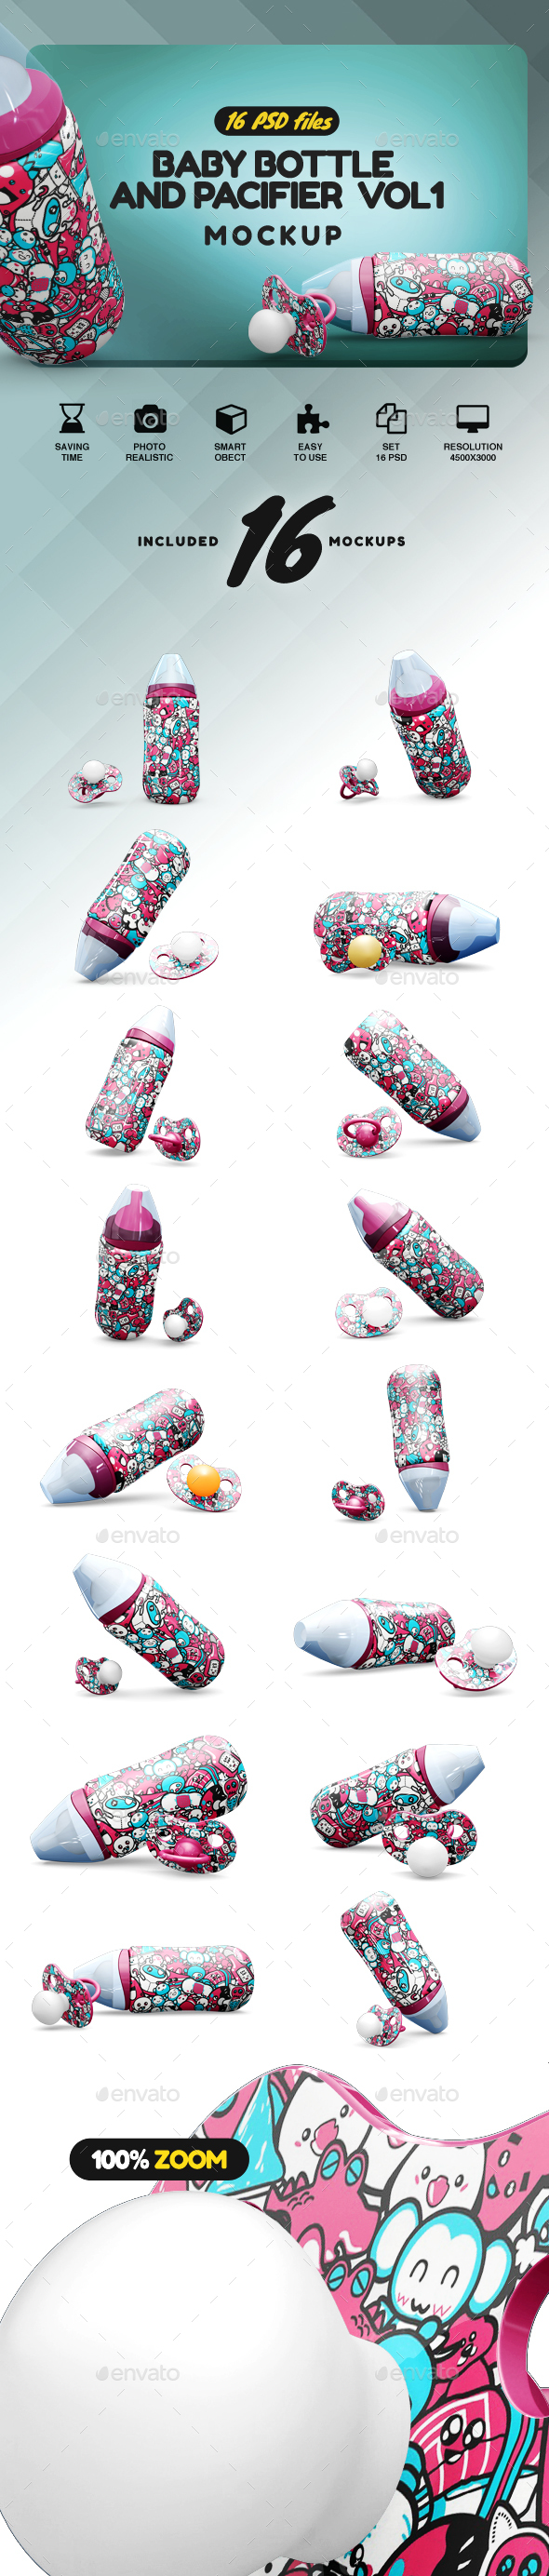 Baby Bottle and Pacifier Mockup - Product Mock-Ups Graphics